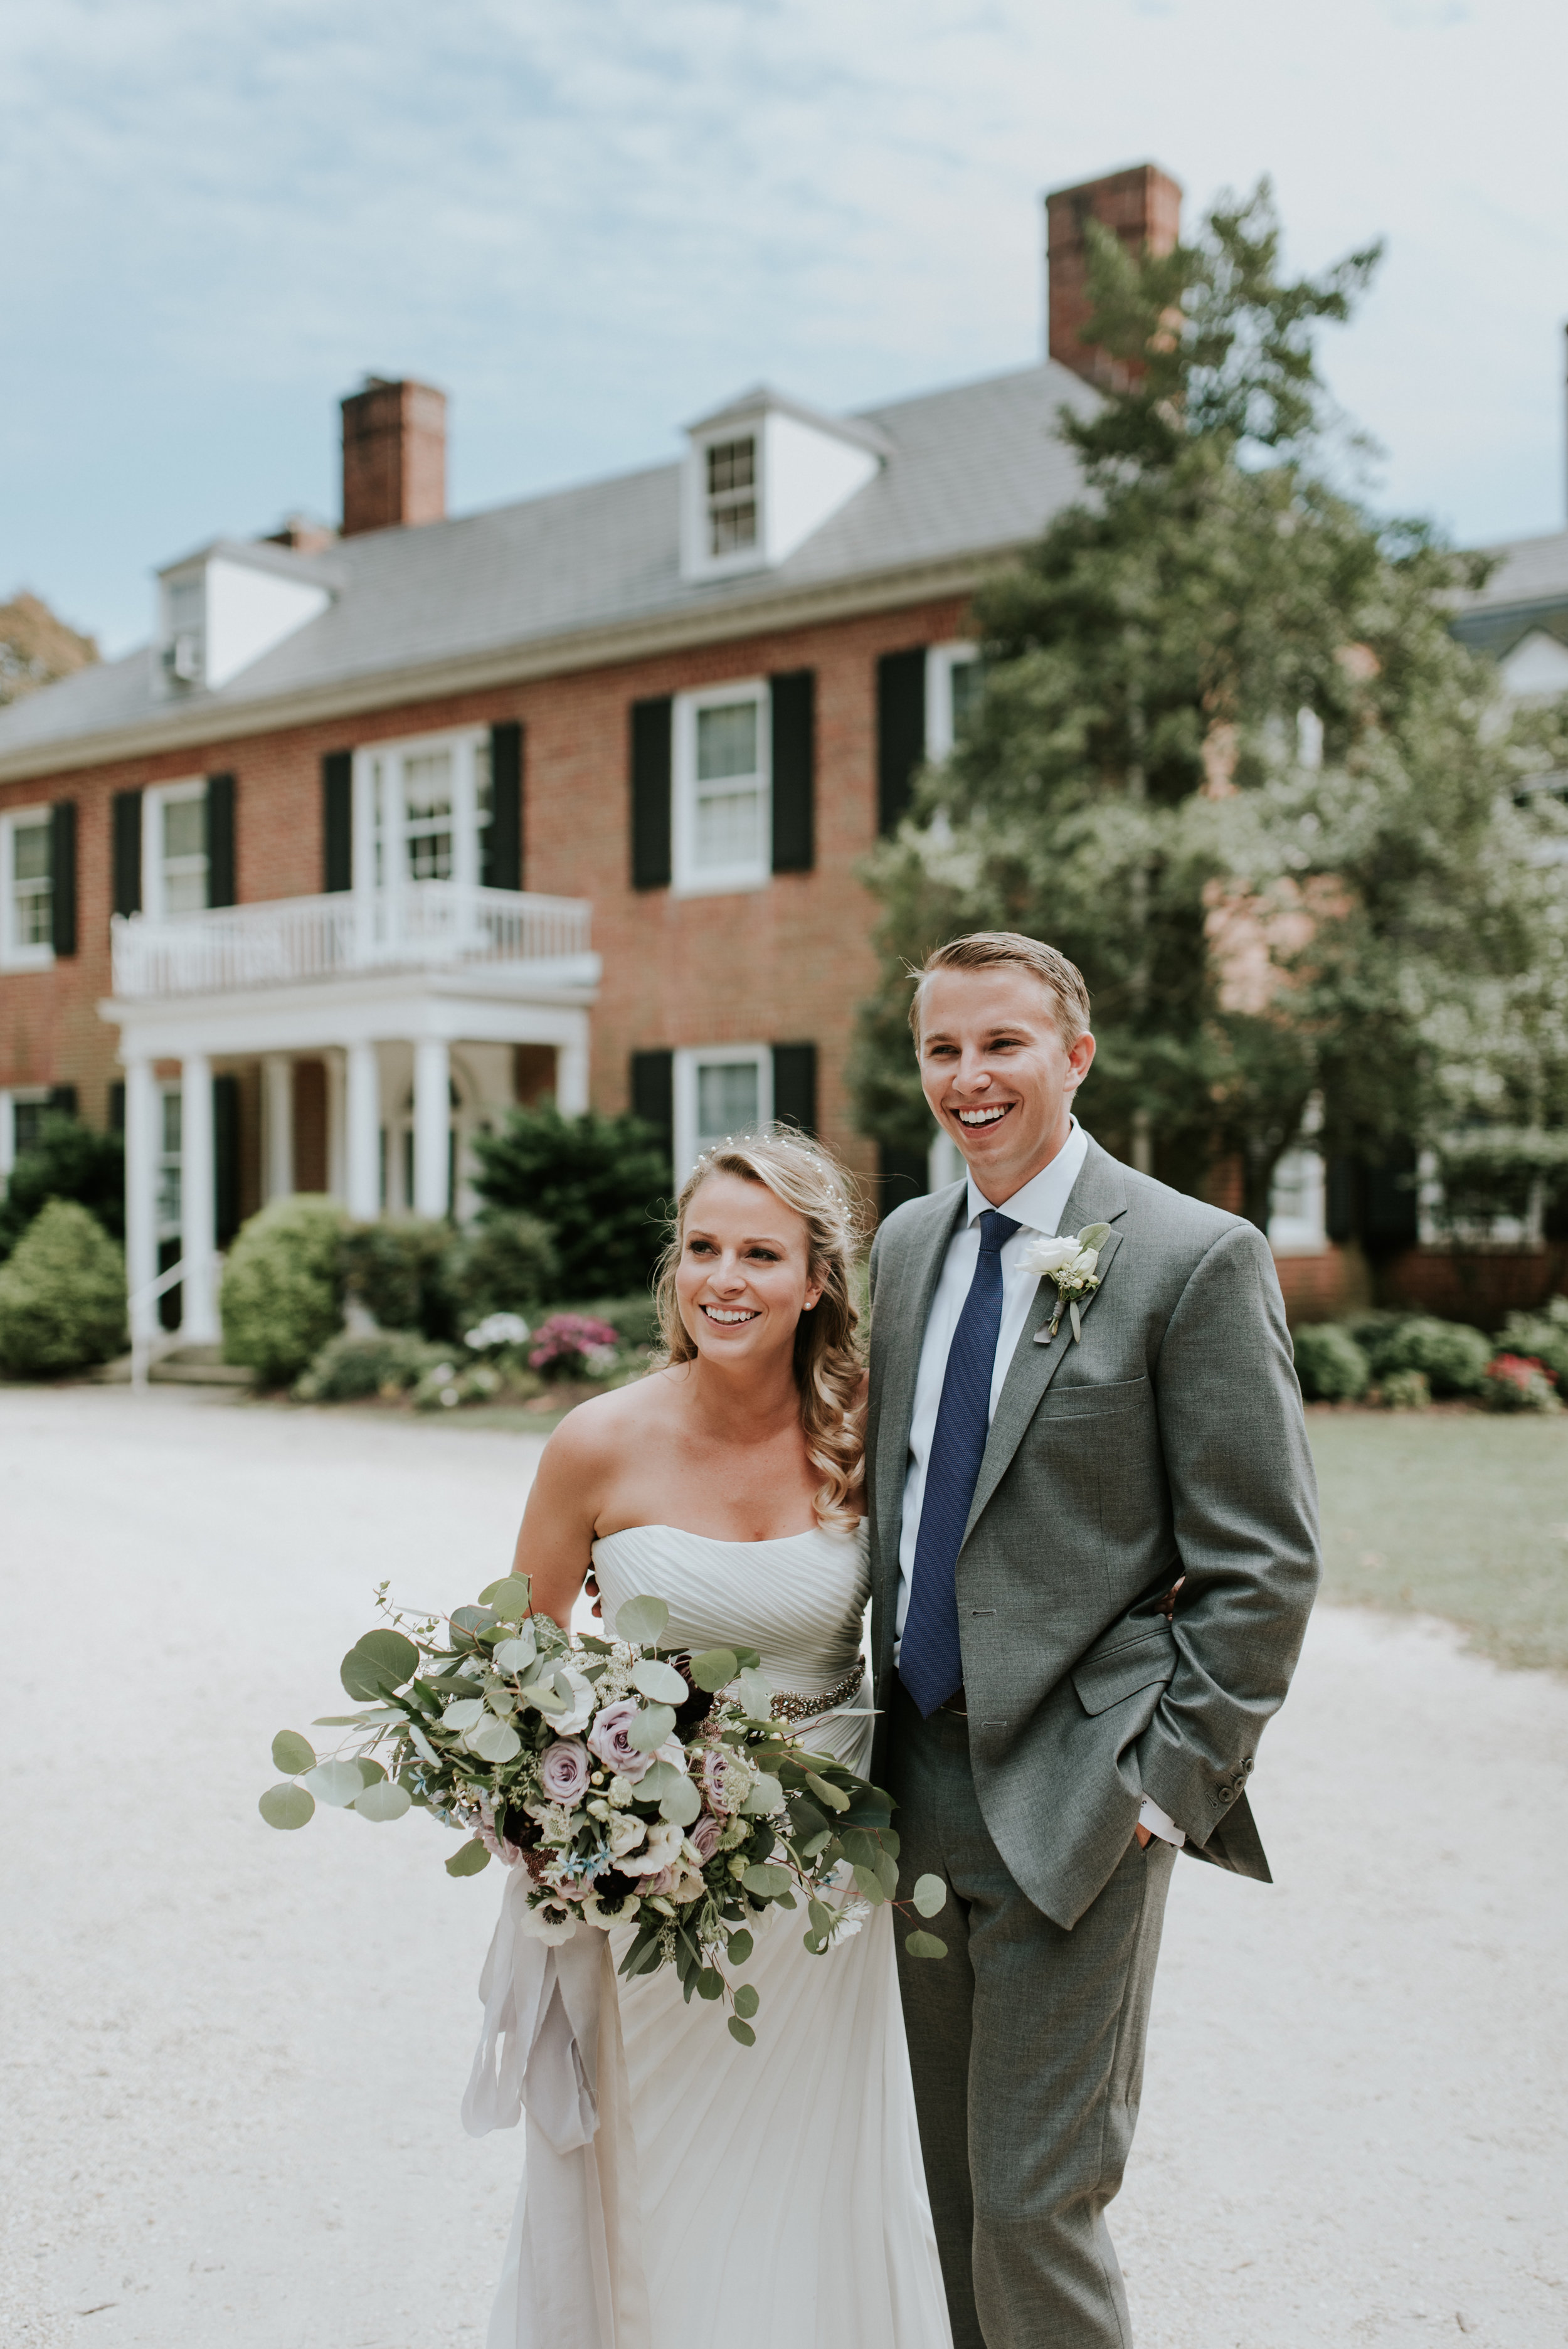 Rustic Oyster Themed Eastern Shore Maryland Outdoor Wedding by East Made Event Company Wedding Planner and Bekah Kay Creative270.jpg